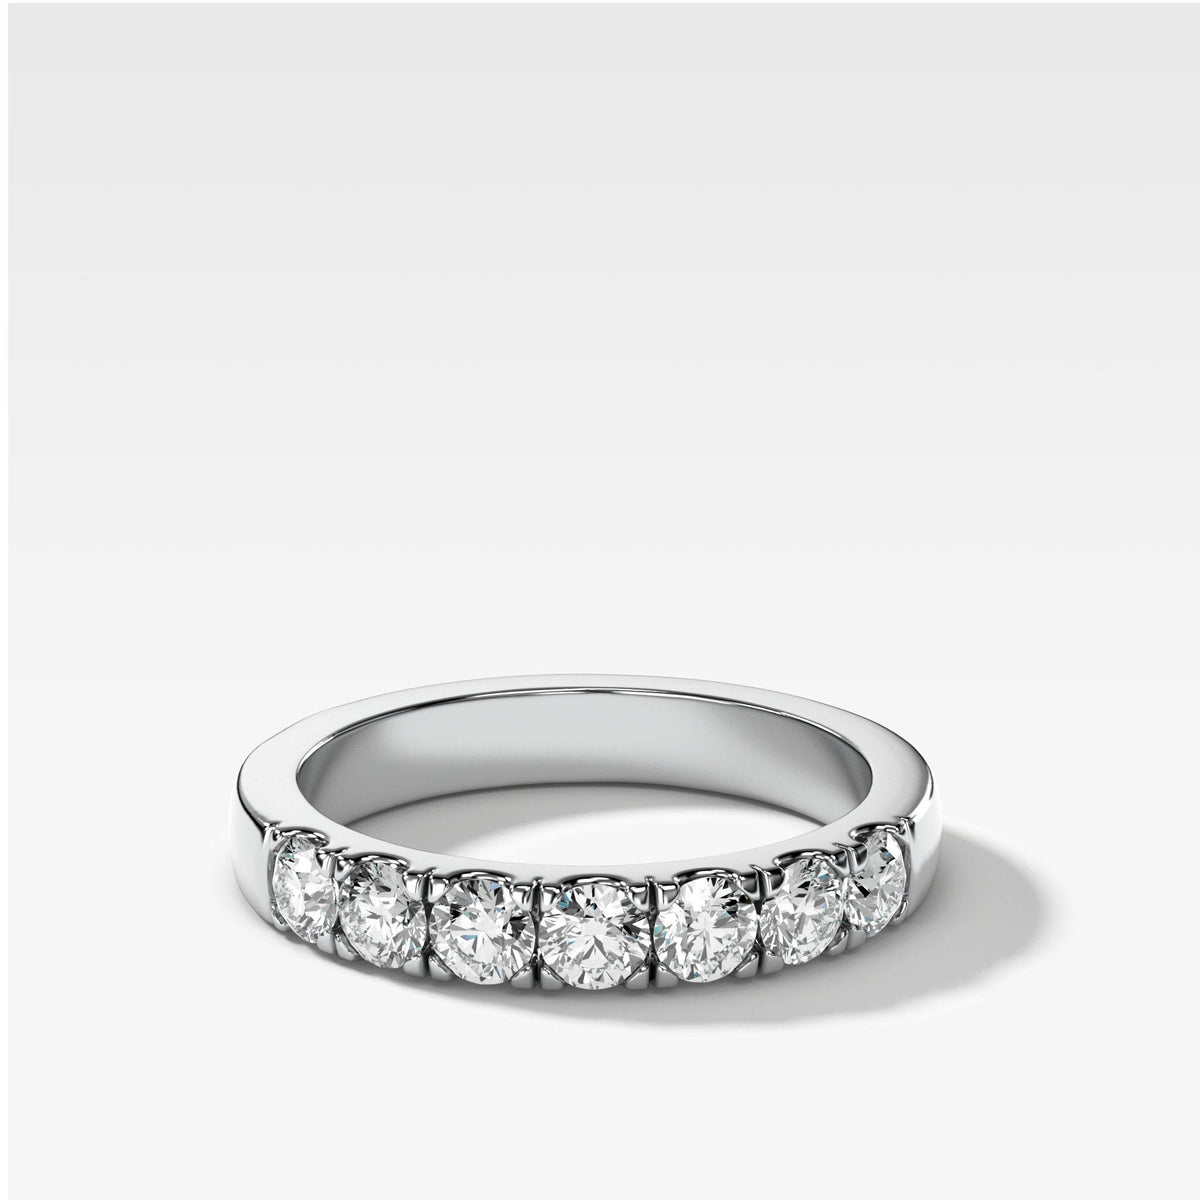 Jumbo Pave Diamond Wedding Band in White Gold by Good Stone